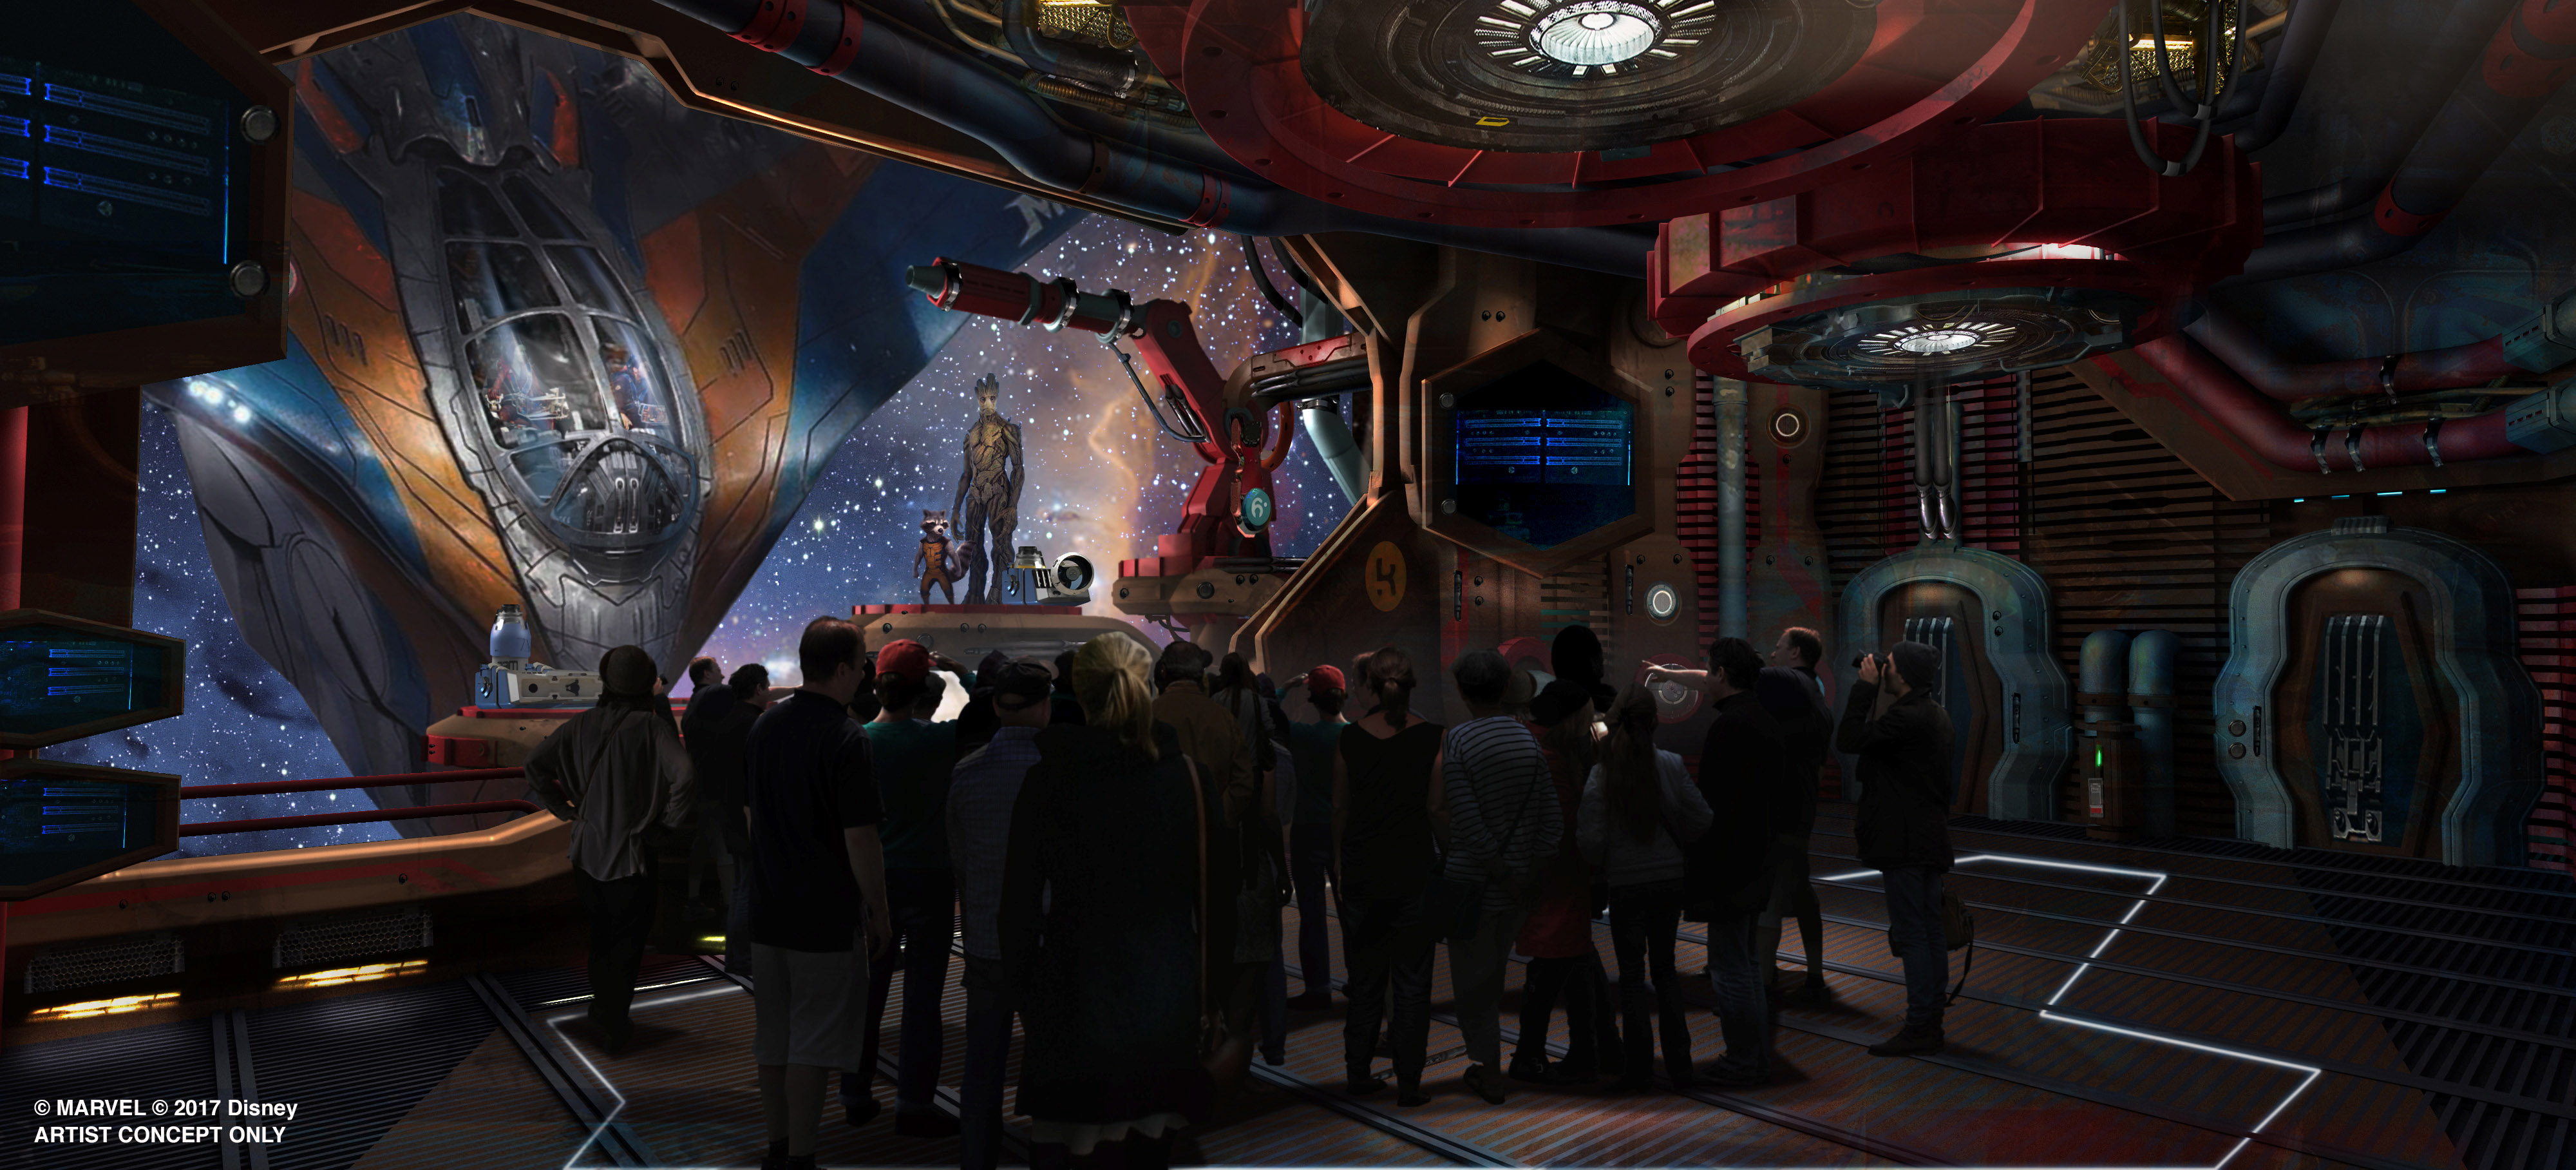 Guardians of the Galaxy ride Epcot